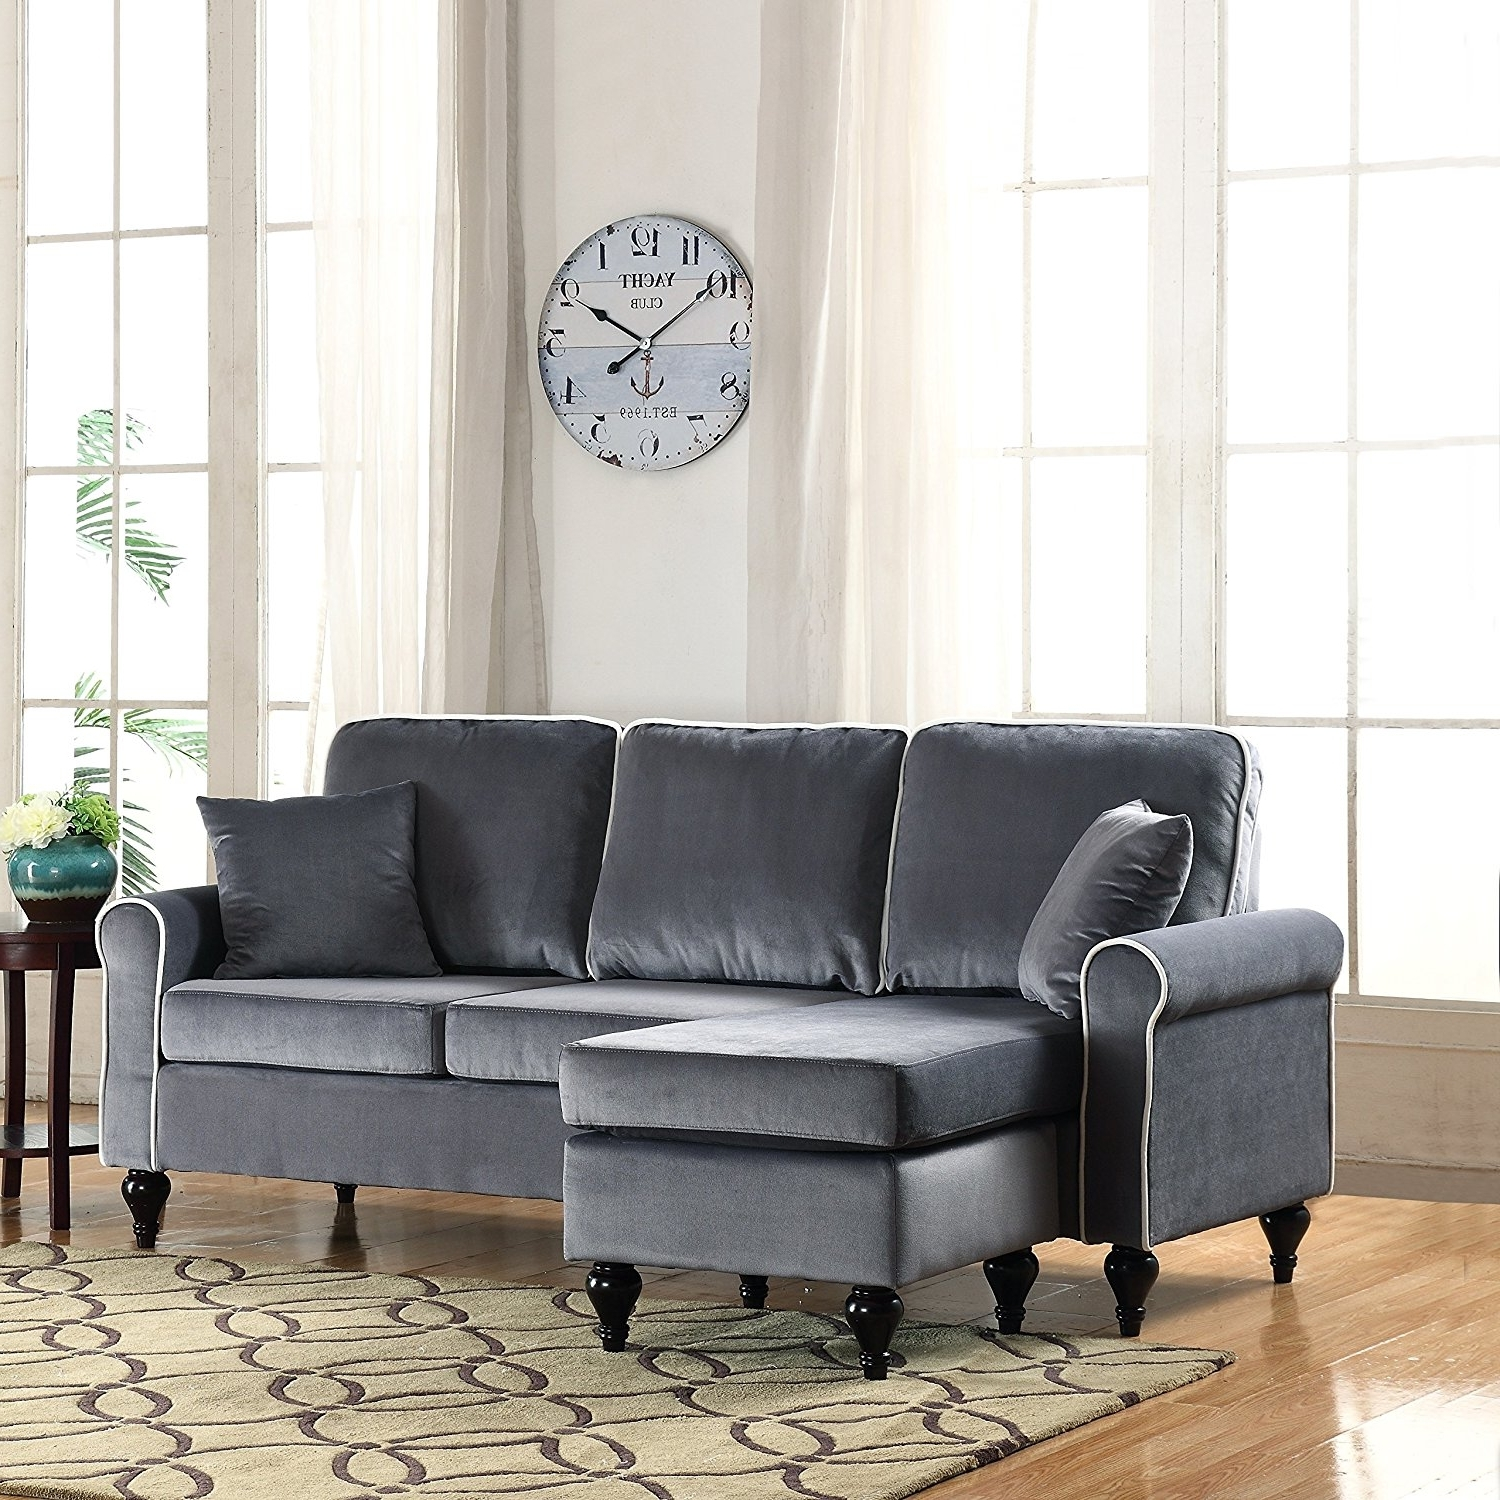 Sofas With Reversible Chaise Throughout Most Popular Amazon: Classic And Traditional Small Space Velvet Sectional (View 8 of 15)